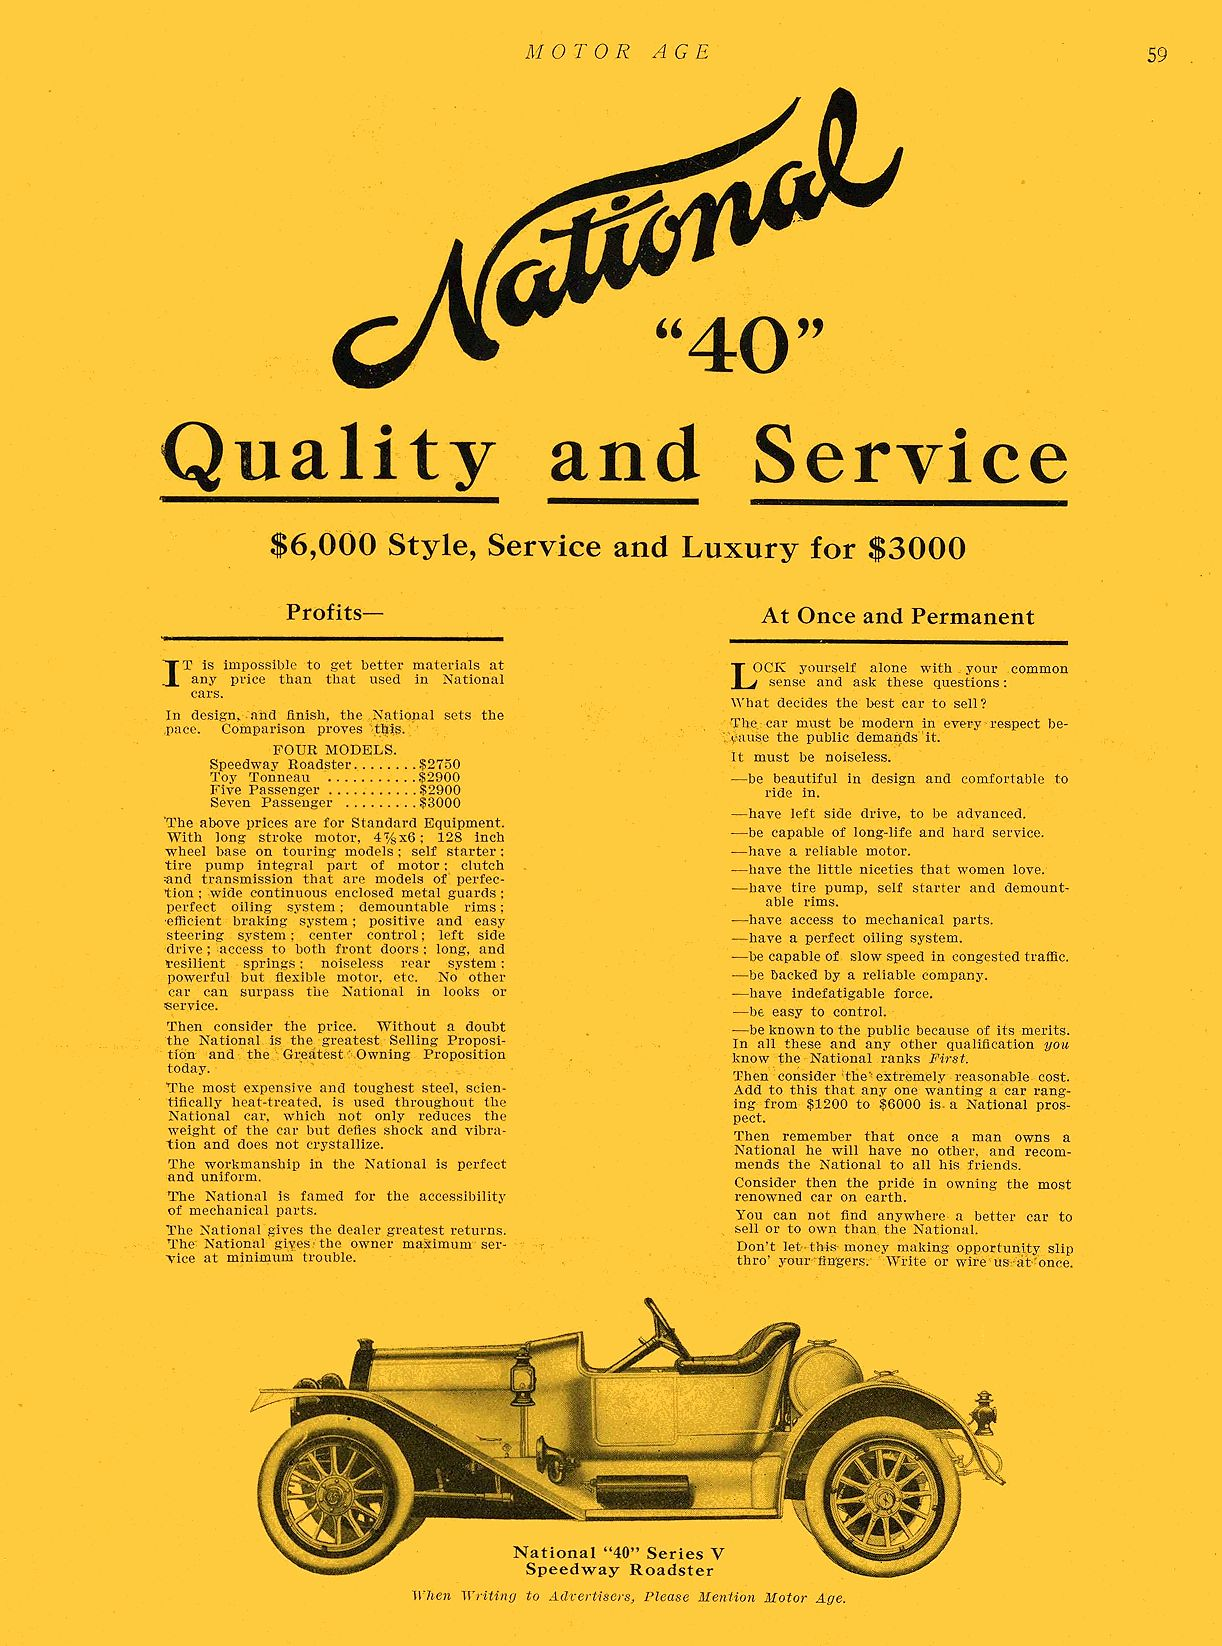 """1912 7 11 NATIONAL National """"40"""" Quality and Service NATIONAL MOTOR VEHICLE CO. Indianapolis, IND MOTOR AGE July 11, 1912 9″x12″ page 59"""